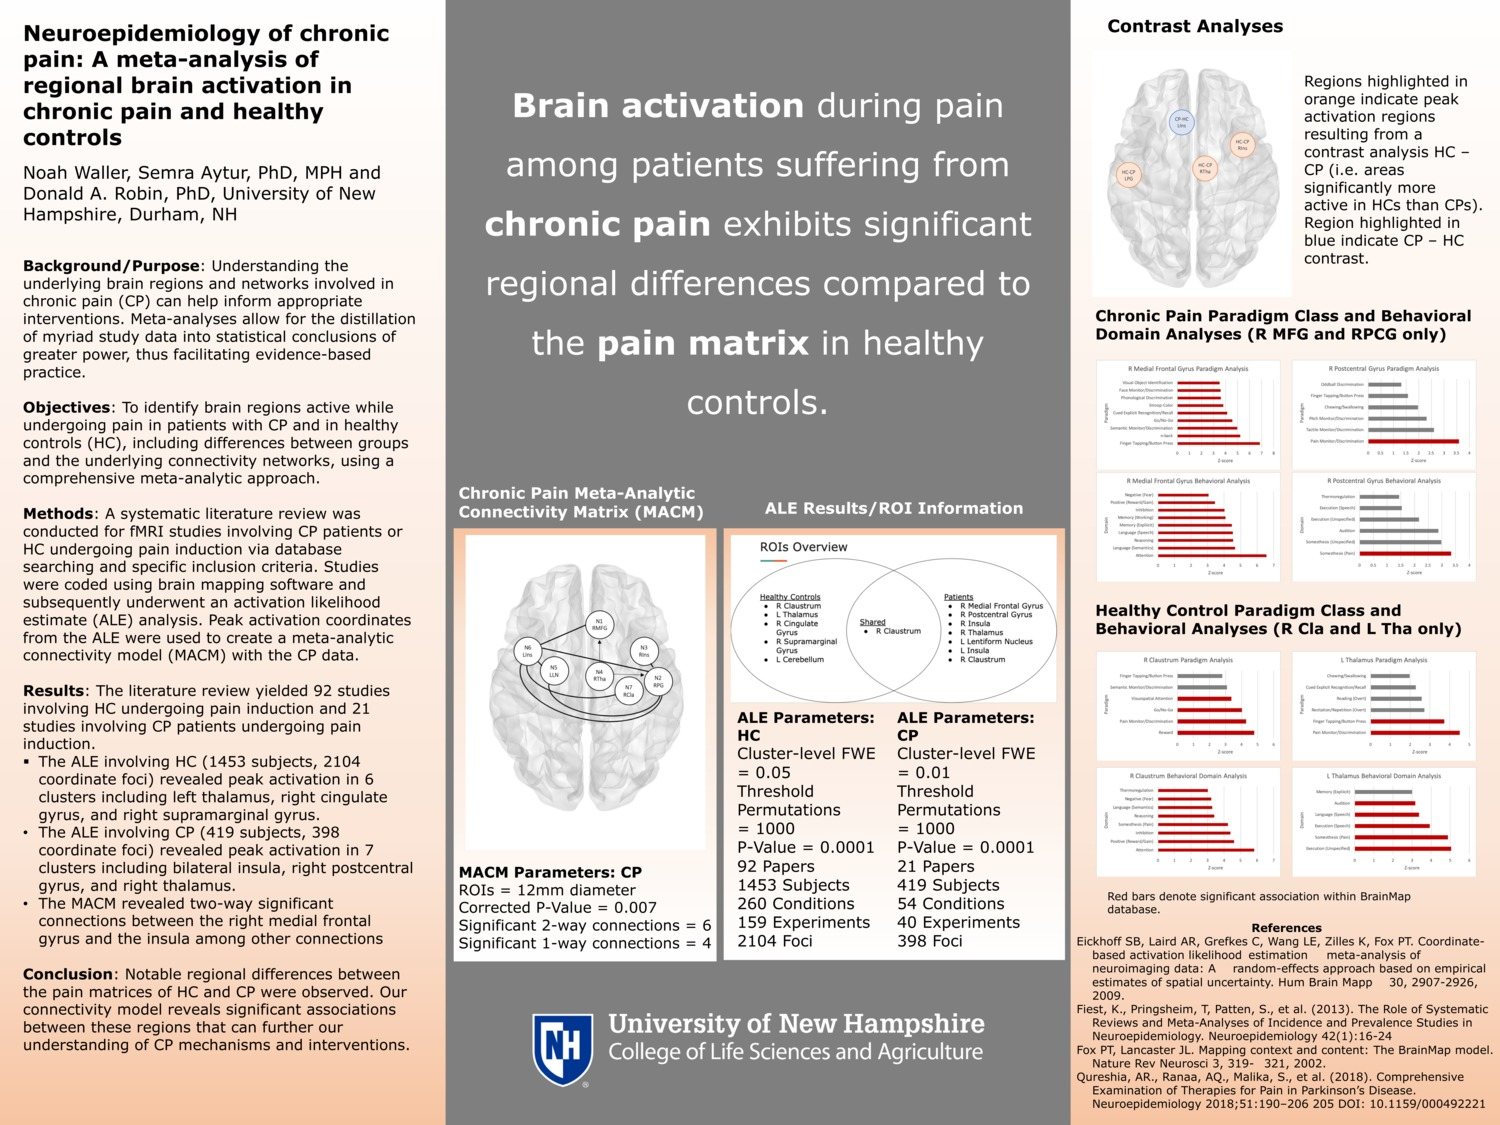 Neuroepidemiology Of Chronic Pain: A Meta-Analysis Of Regional Brain Activation In Chronic Pain And Healthy Controls by ncw1004